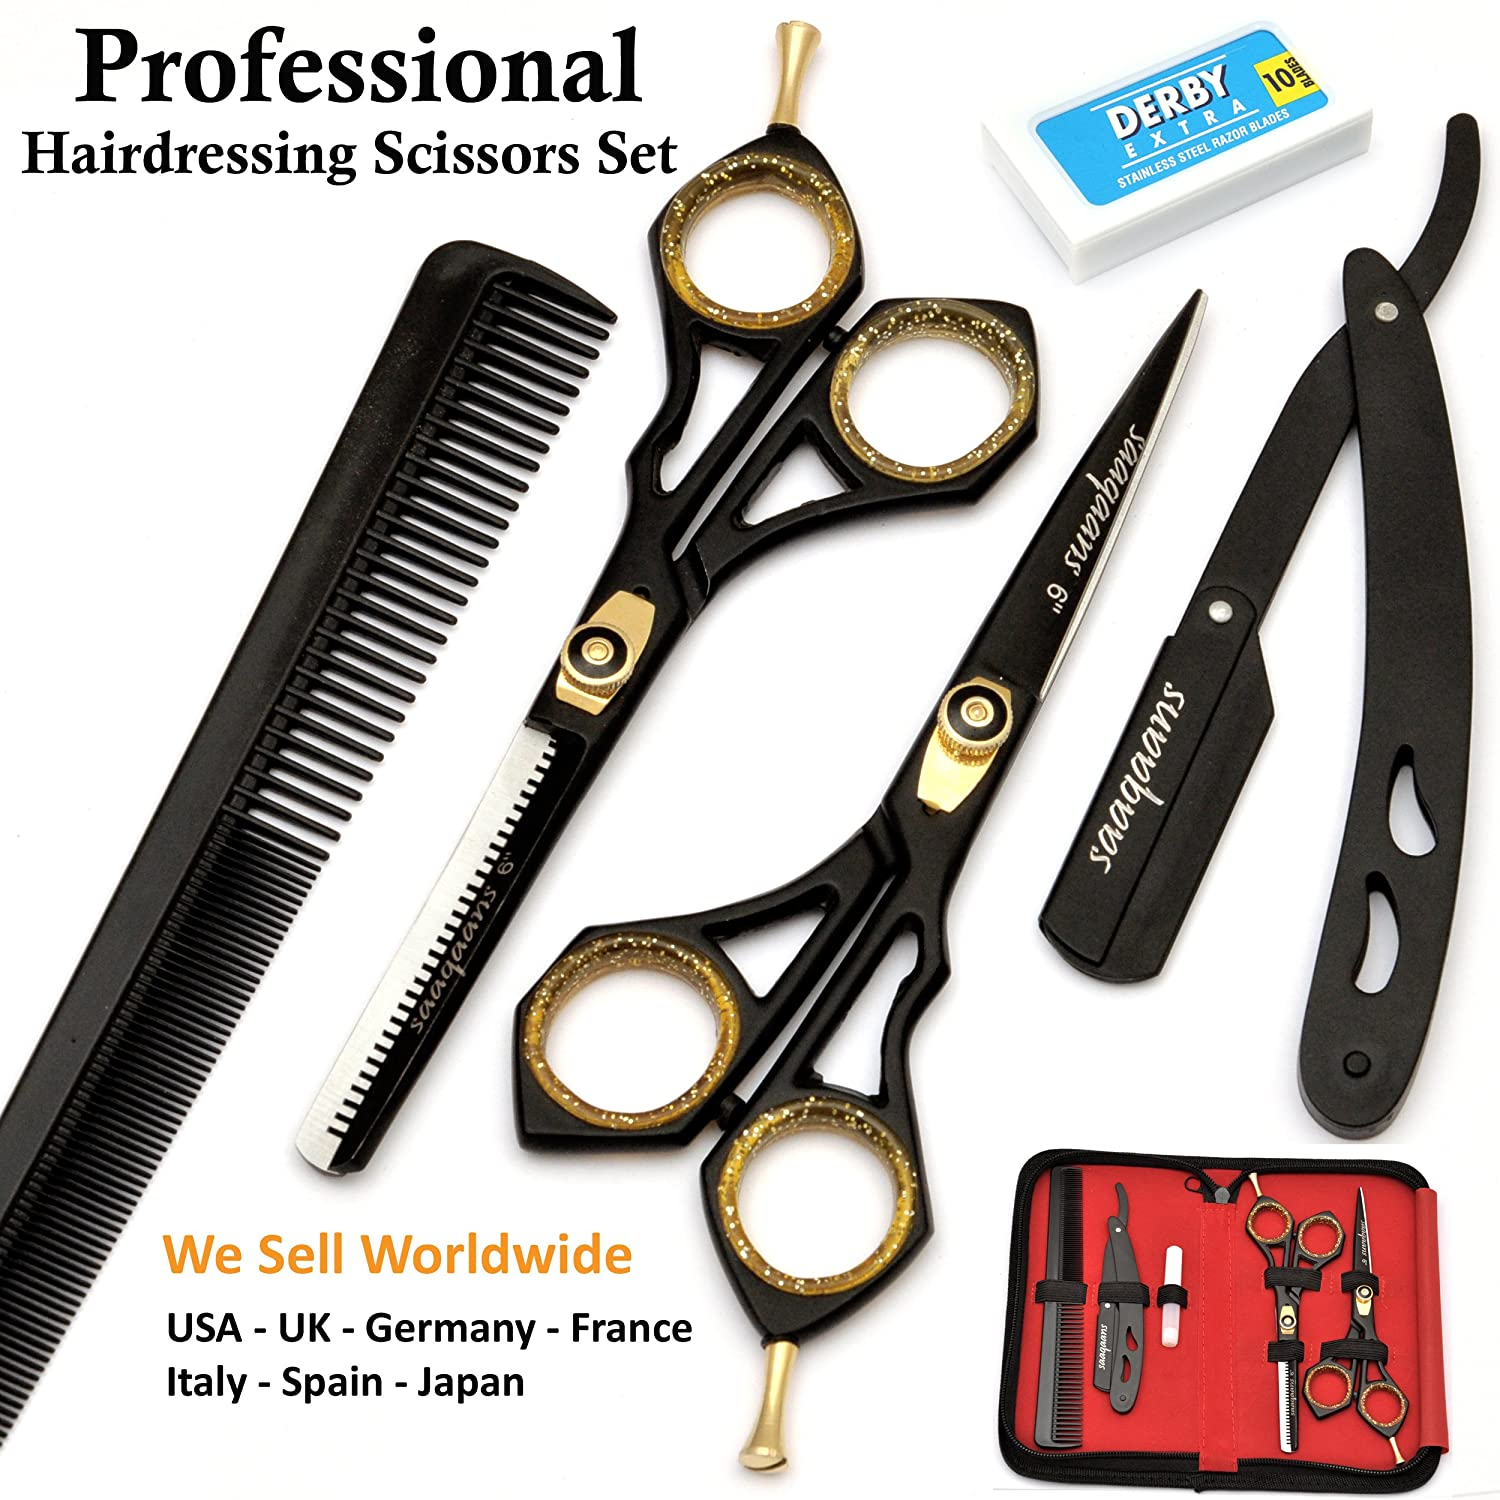 Saaqaans SQKIT Professional Hairdresser Scissors Set - Package includes Barber Scissor, Thinning Shear, Straight Razor, 10 x Double Edge Blades and Hair Comb in Stylish Black Scissors Case